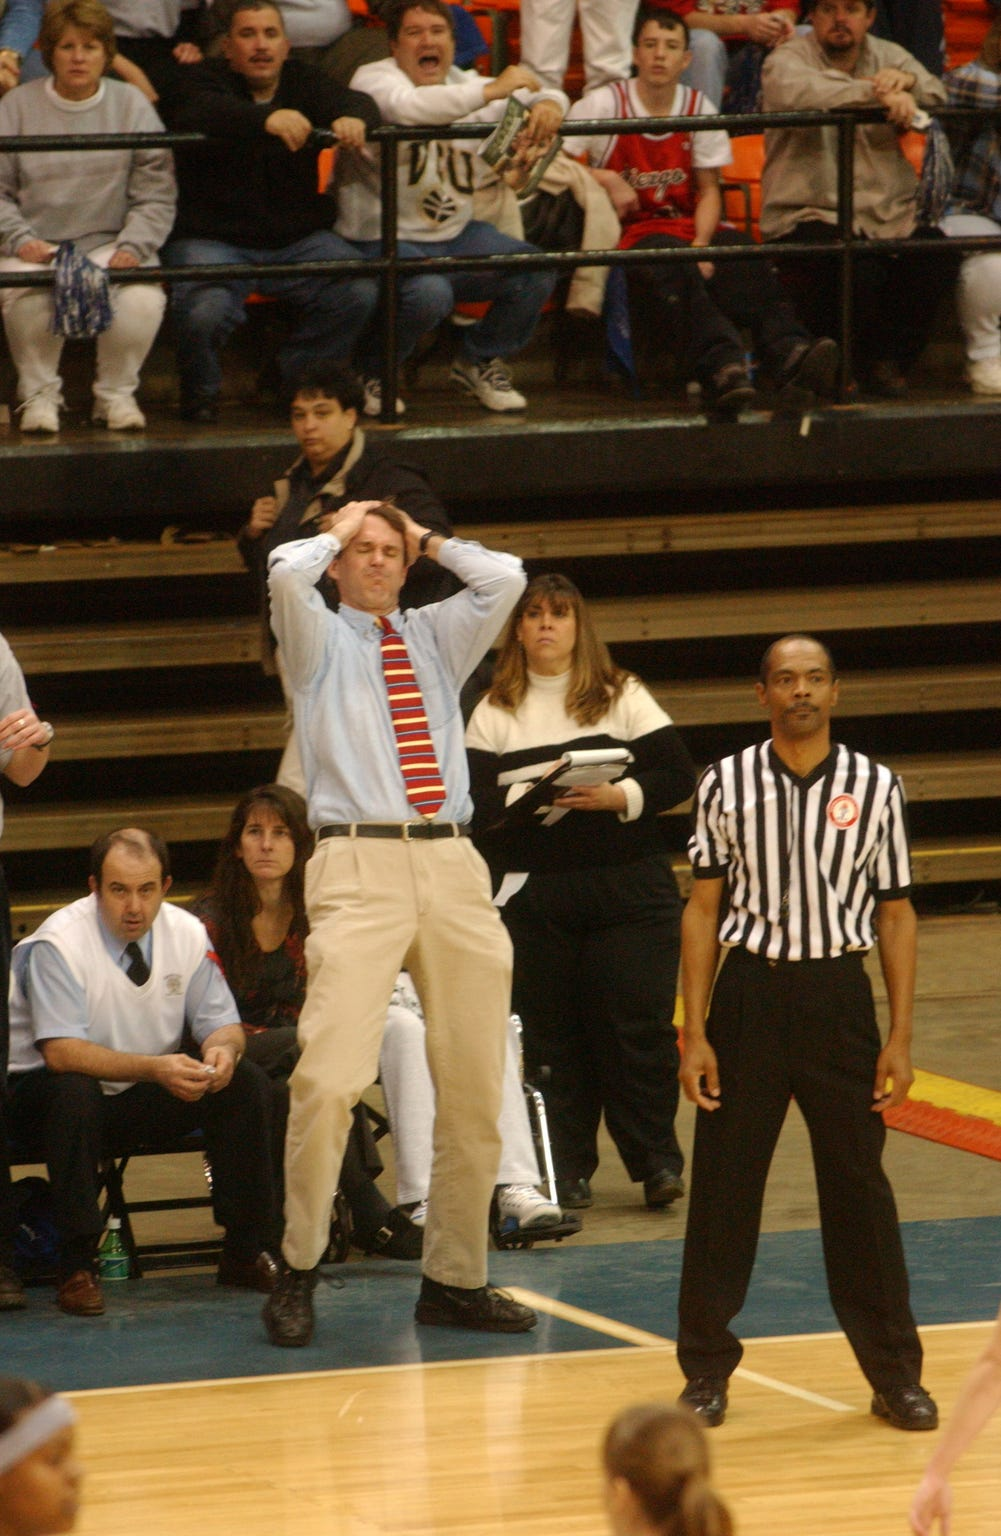 For four years, starting in 1999, Dan Bonner coached the Robert E. Lee High School girls basketball team.